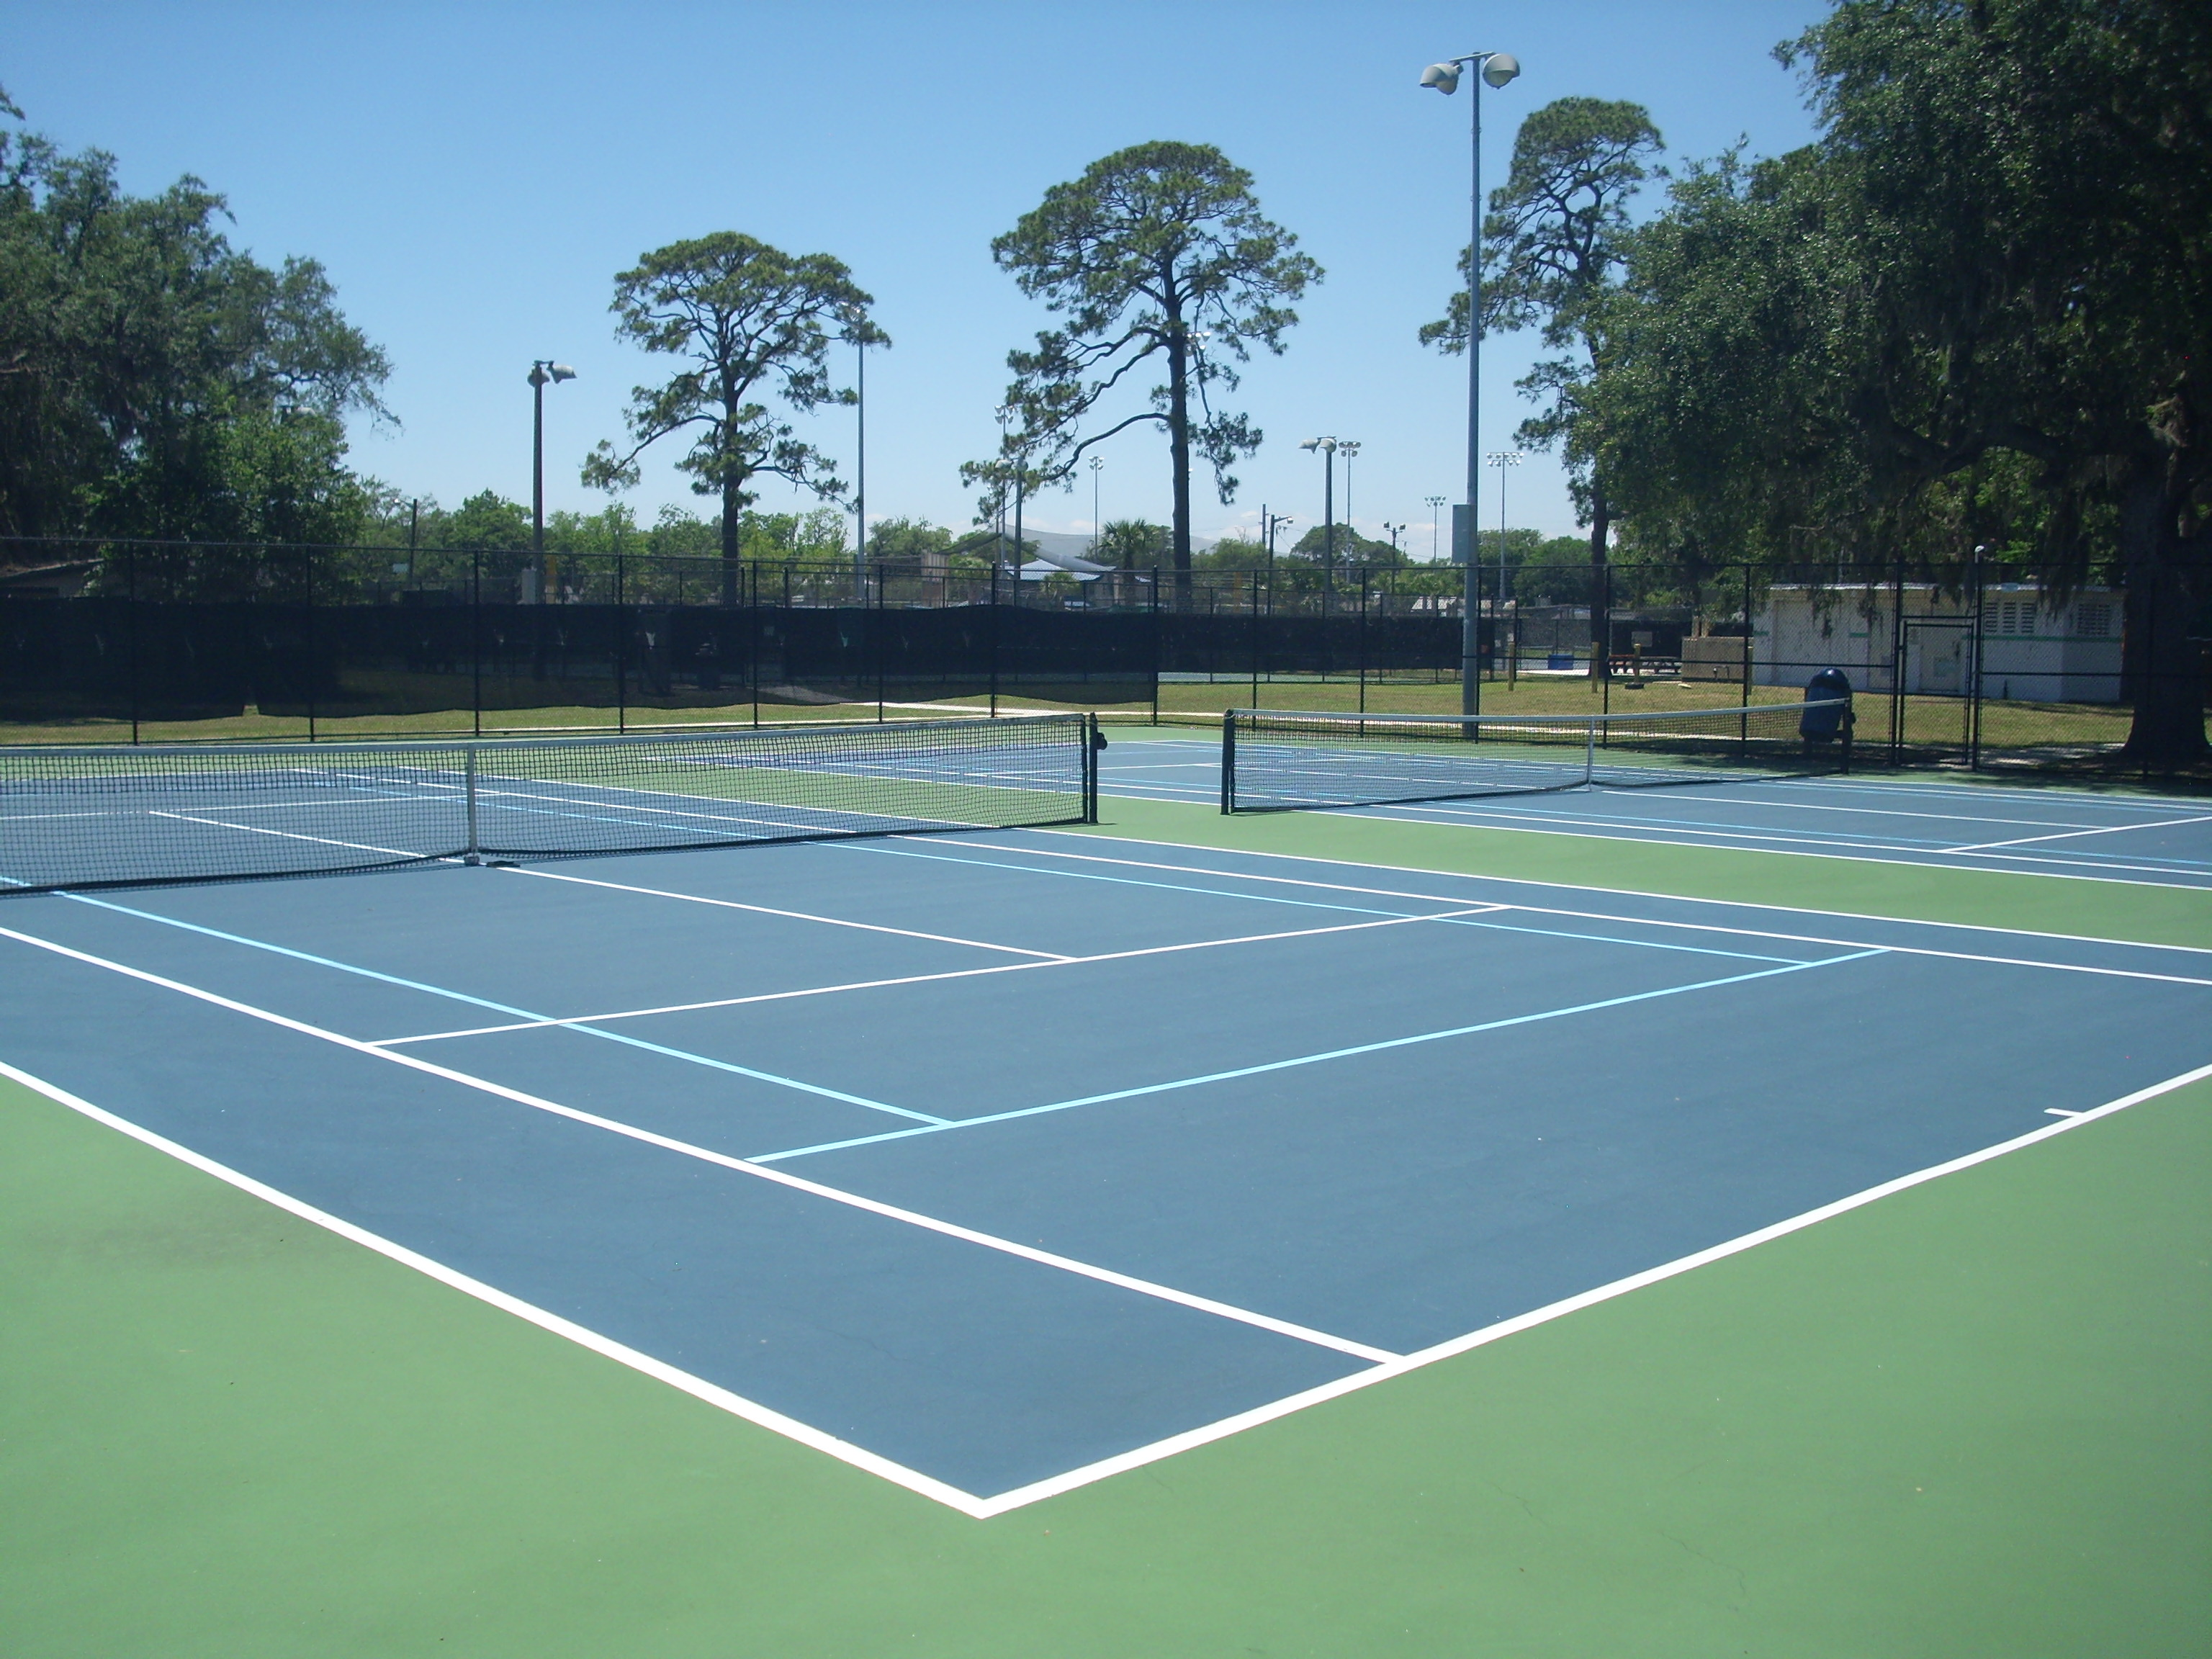 CP Tennis Courts 1 and 2